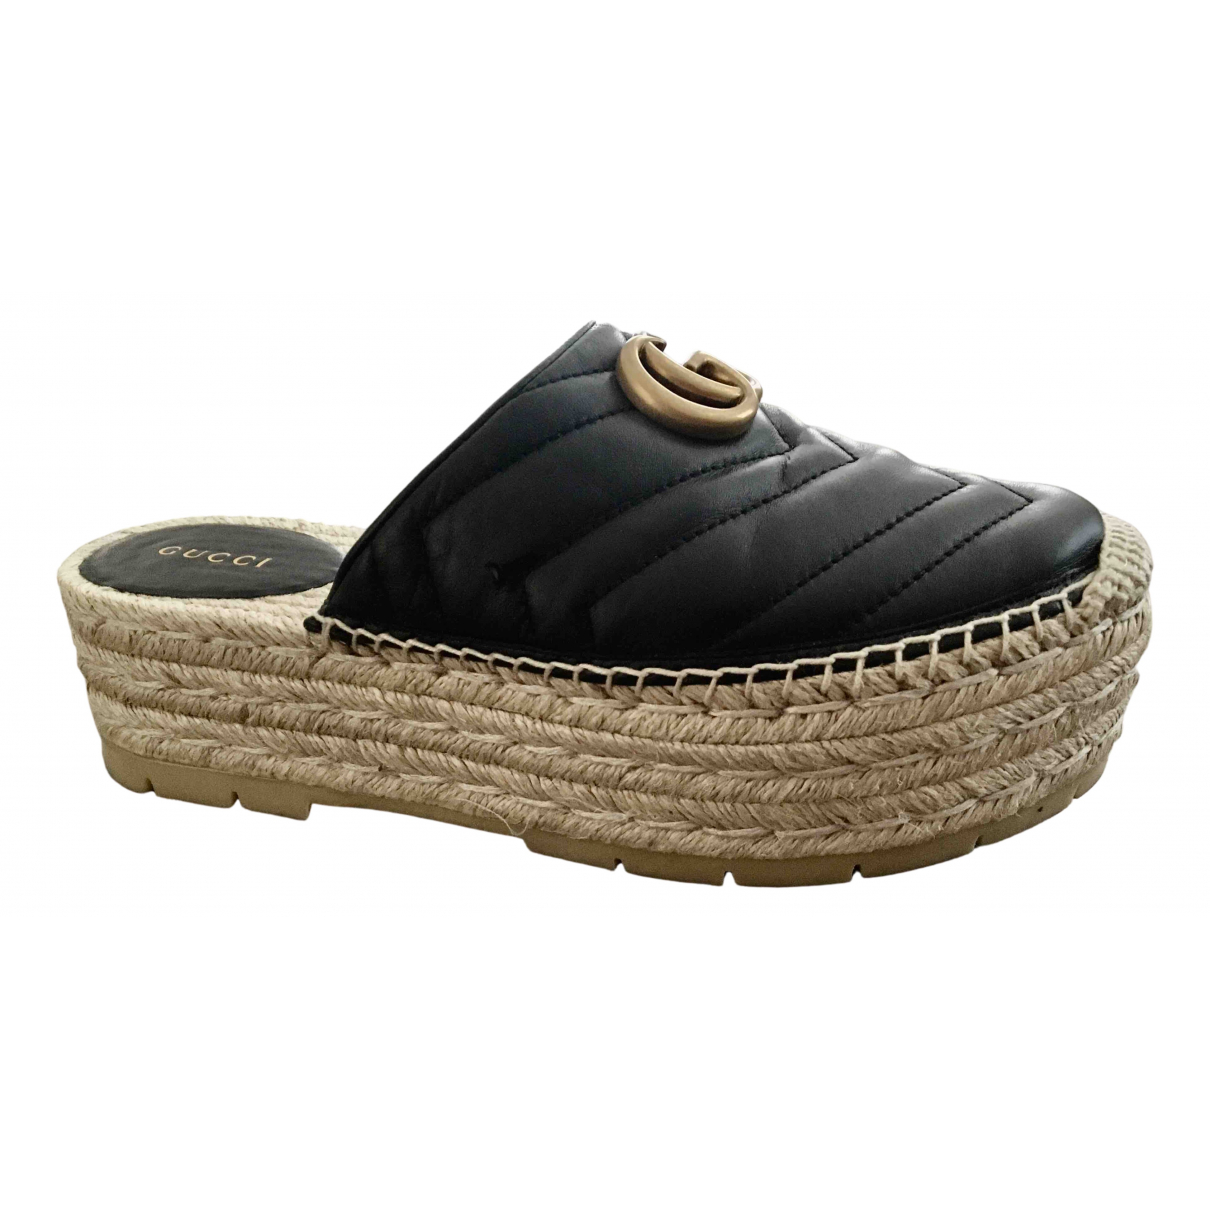 Gucci Lilibeth Black Leather Espadrilles for Women 36 EU